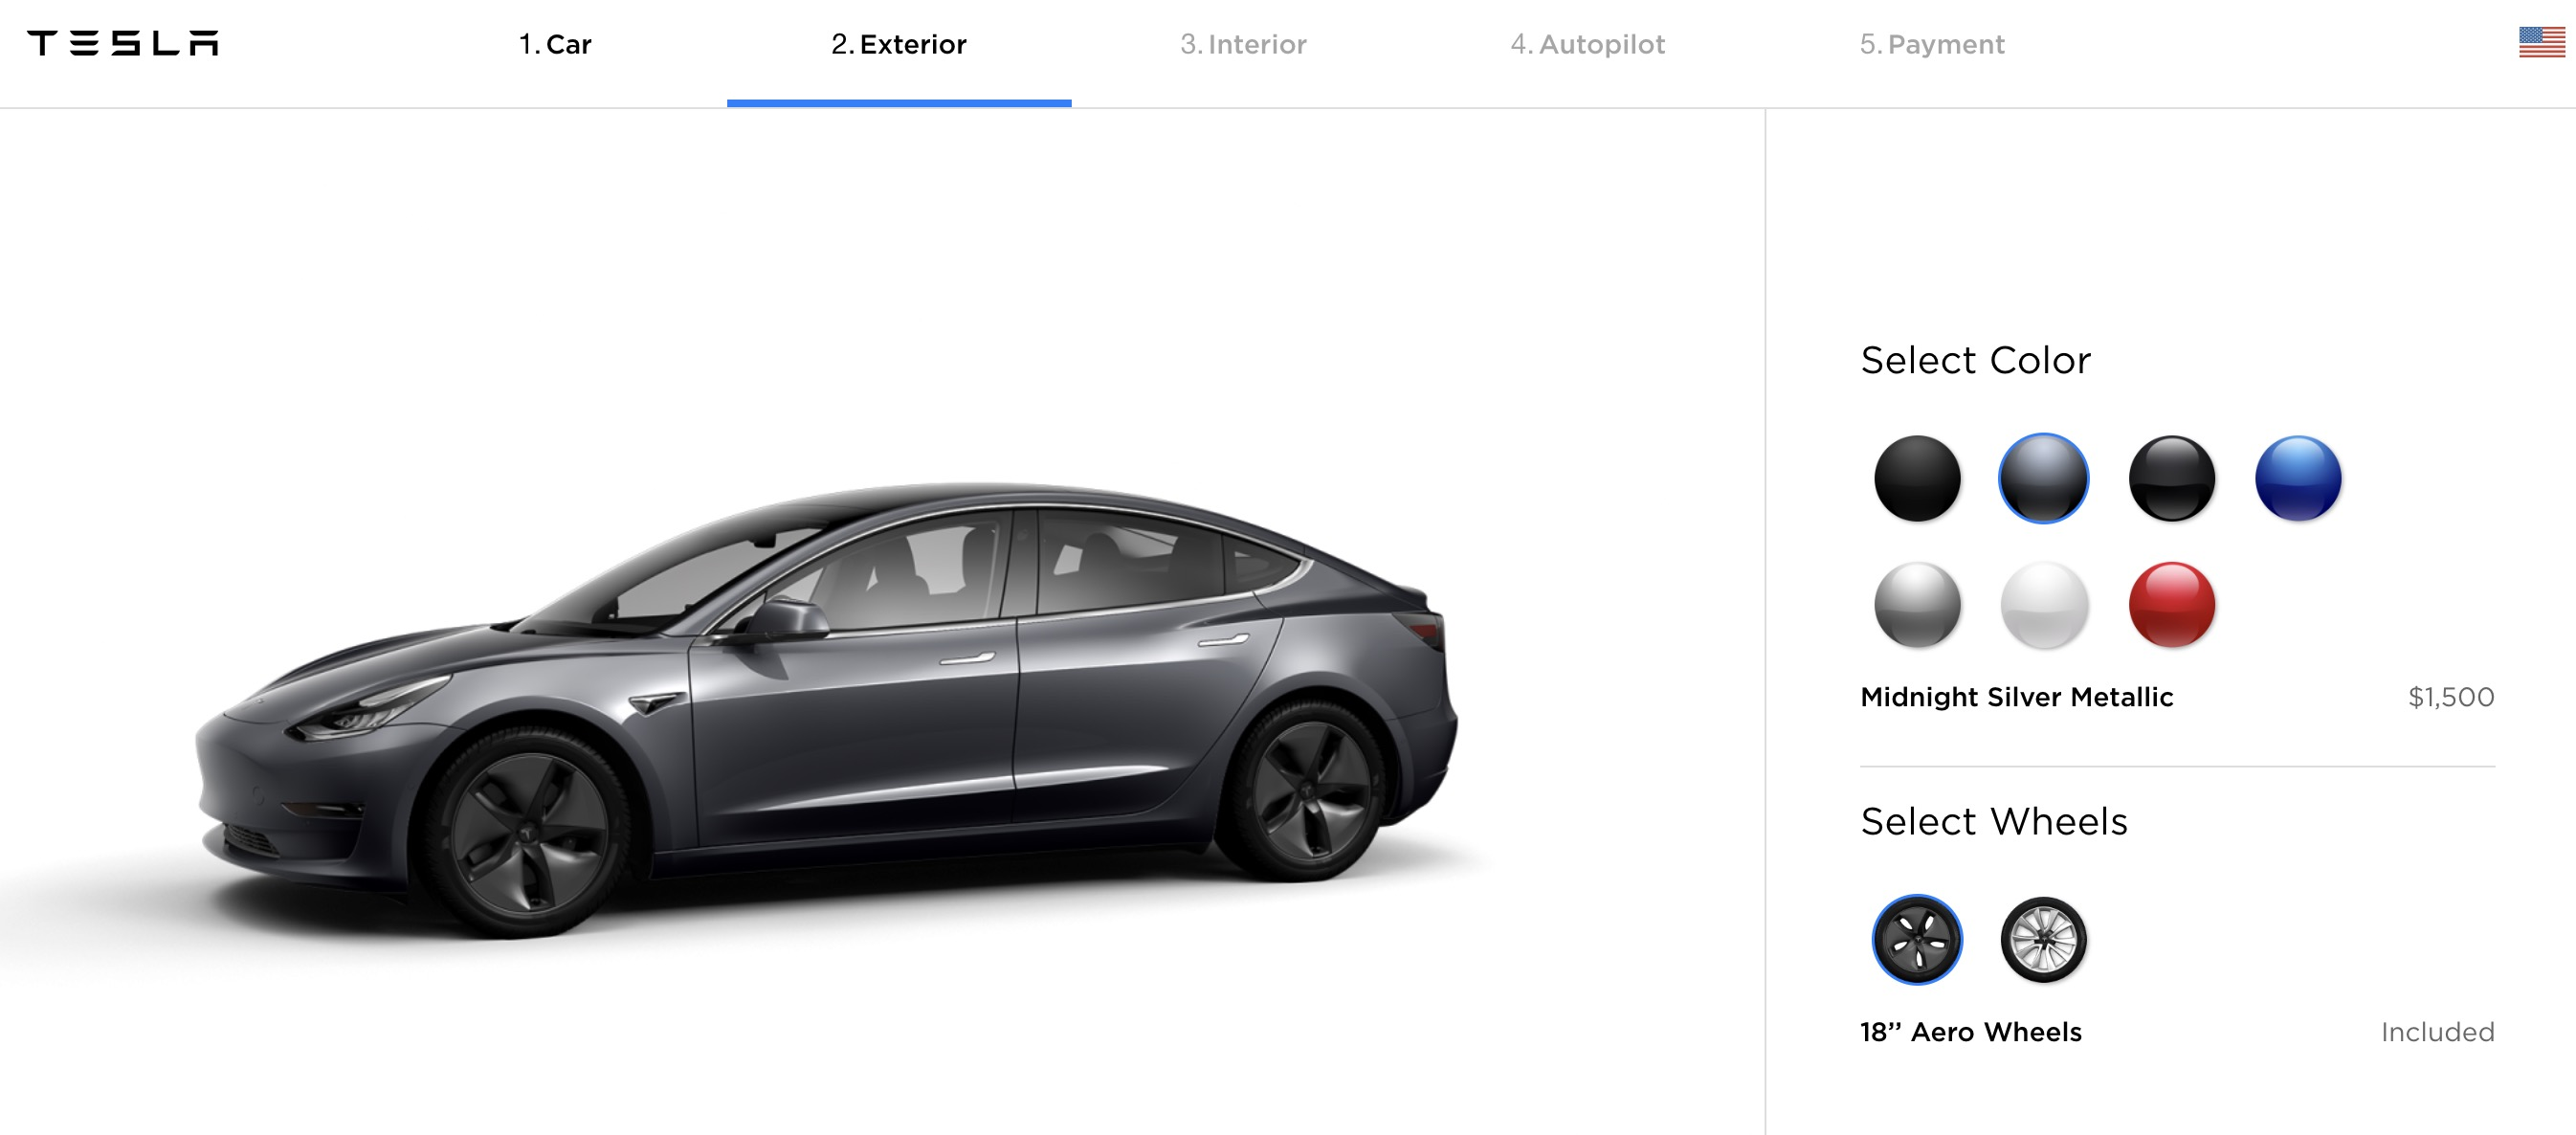 Tesla to eliminate some paint options to increase production efficiency, gives last chance to order